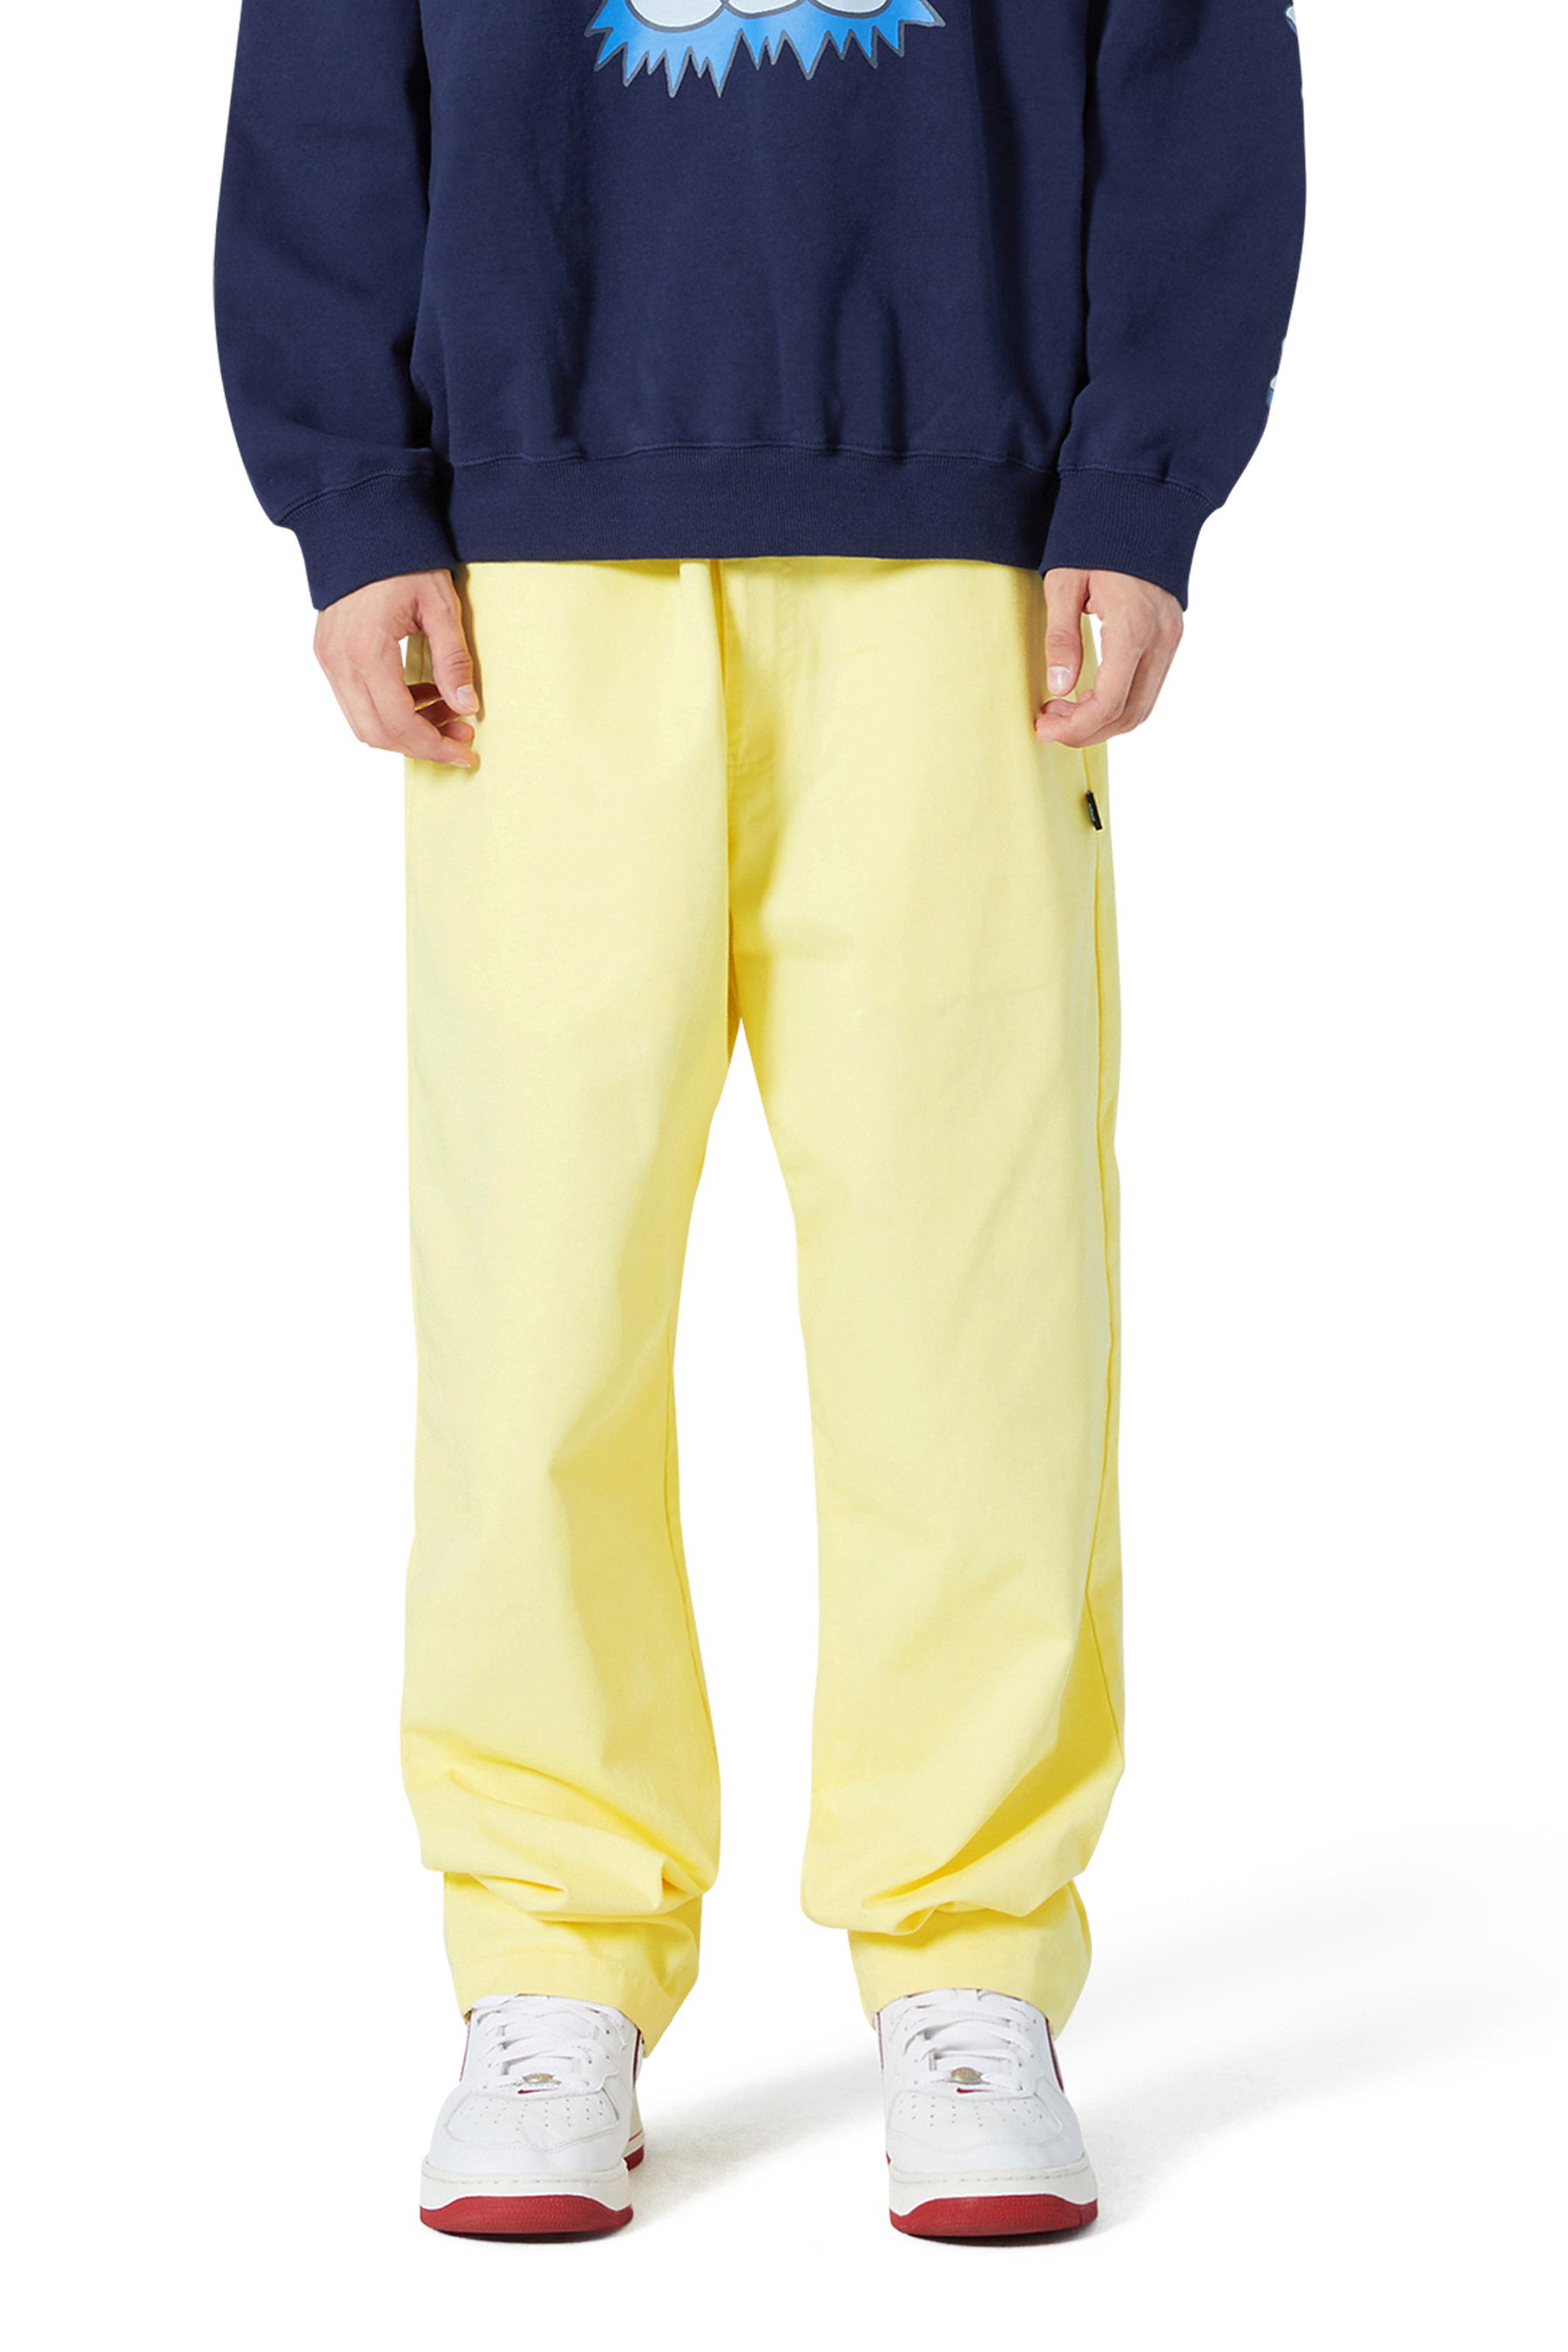 Clover Chino Pants Yellow